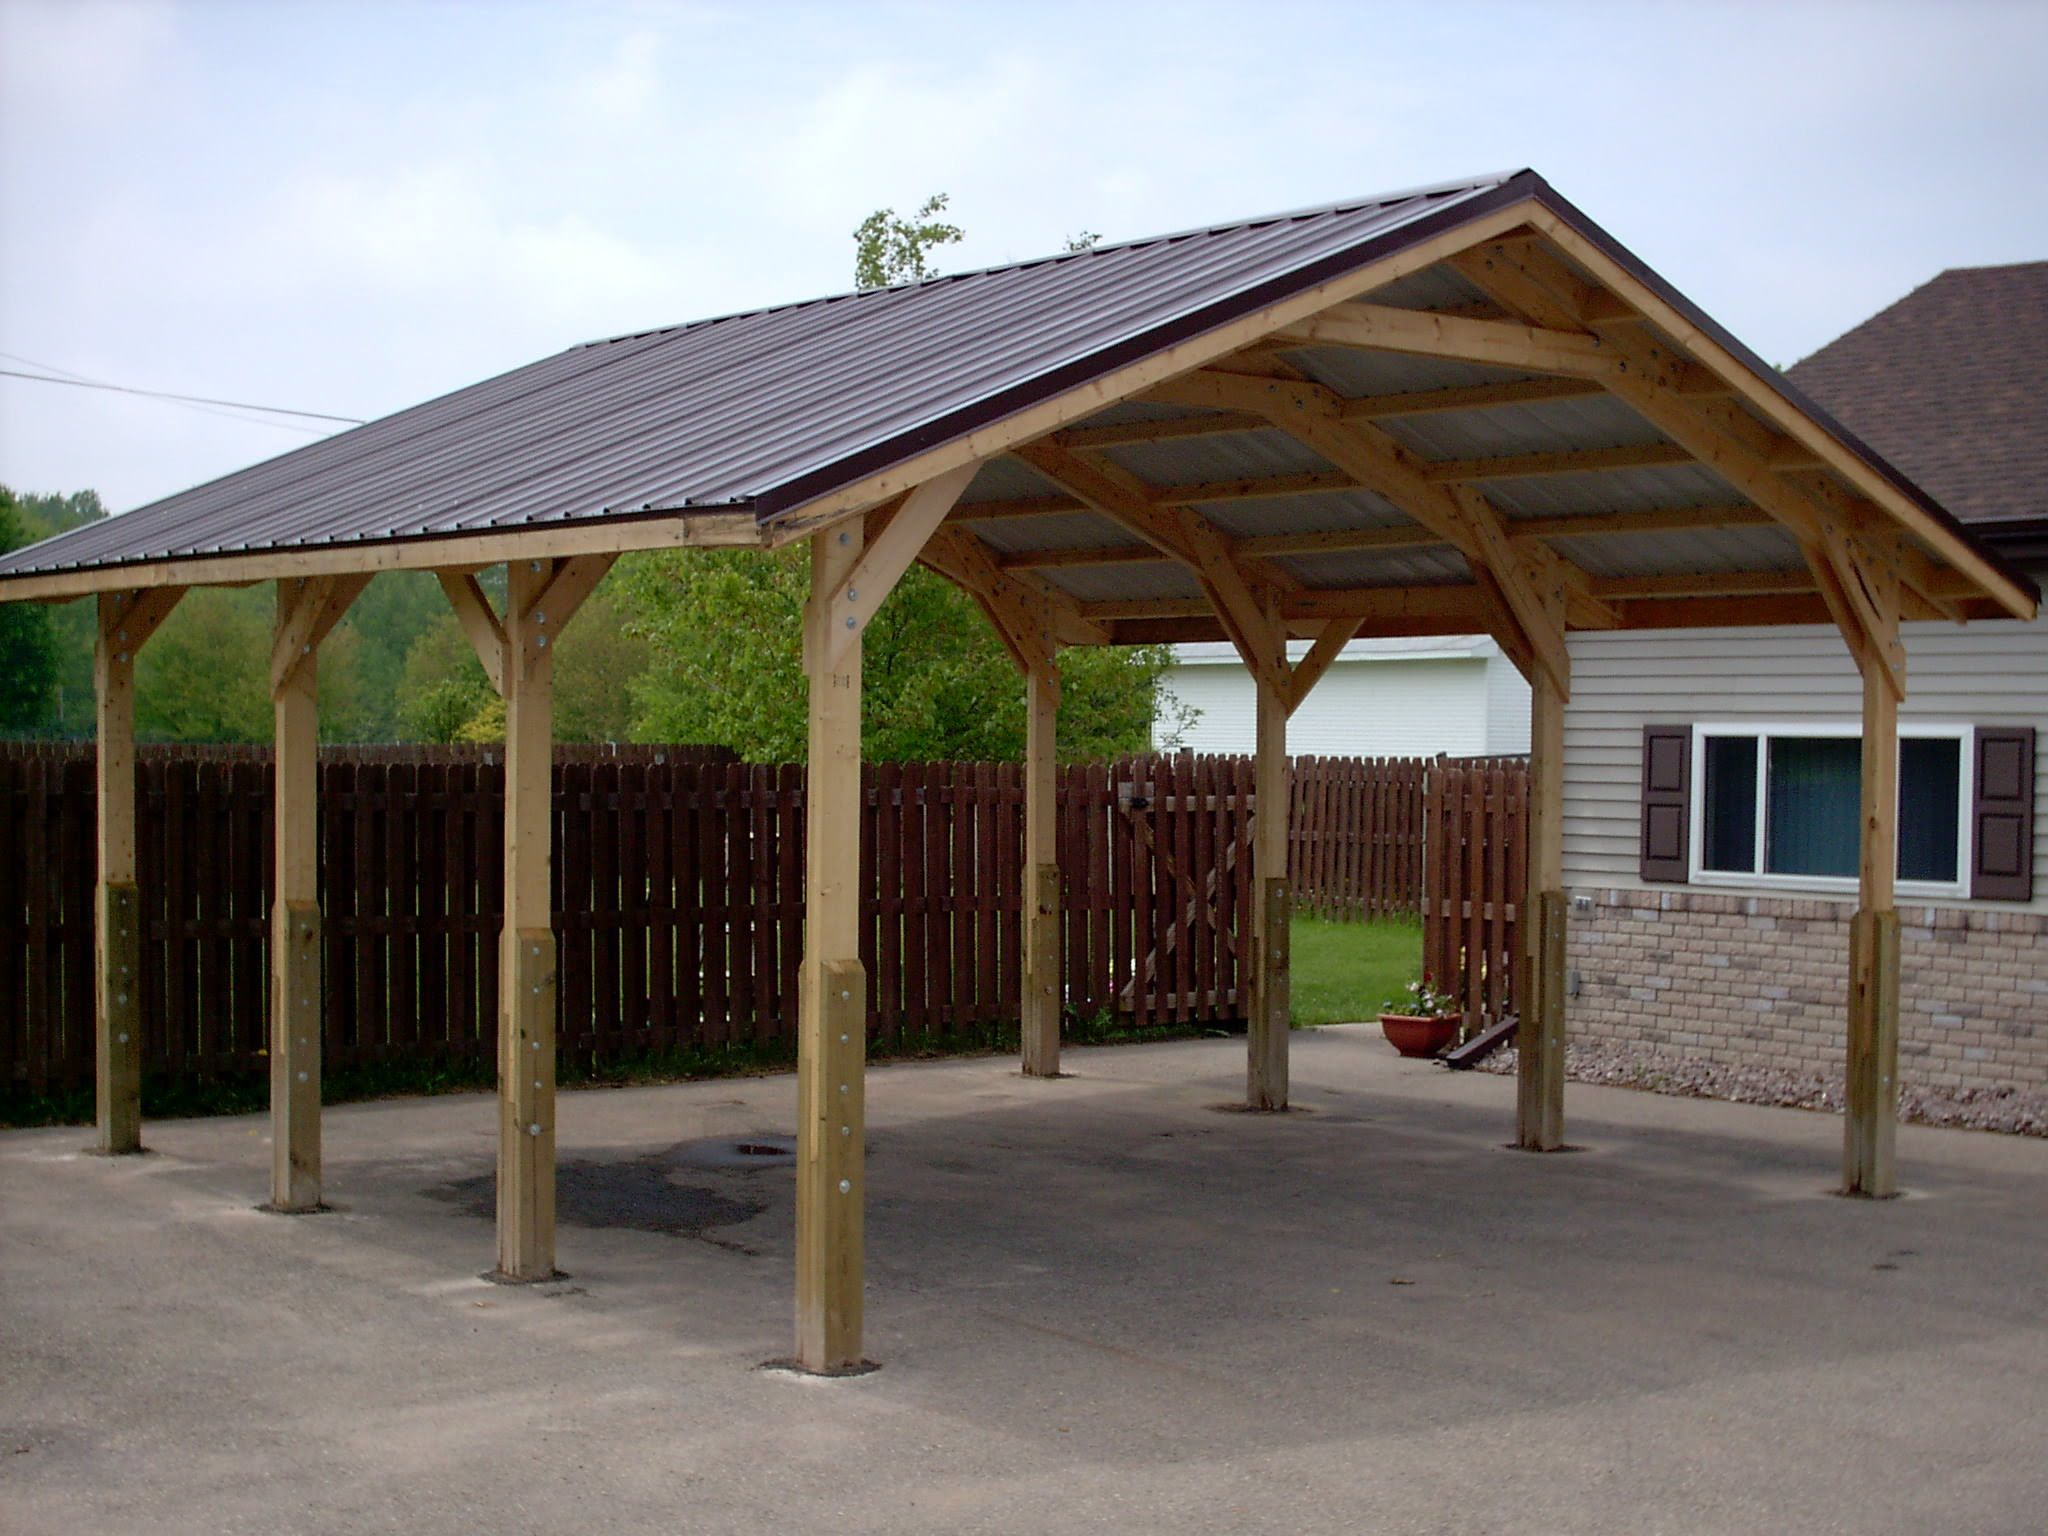 Car port shawanocarport wayneofbowler car ports for Garage and carport